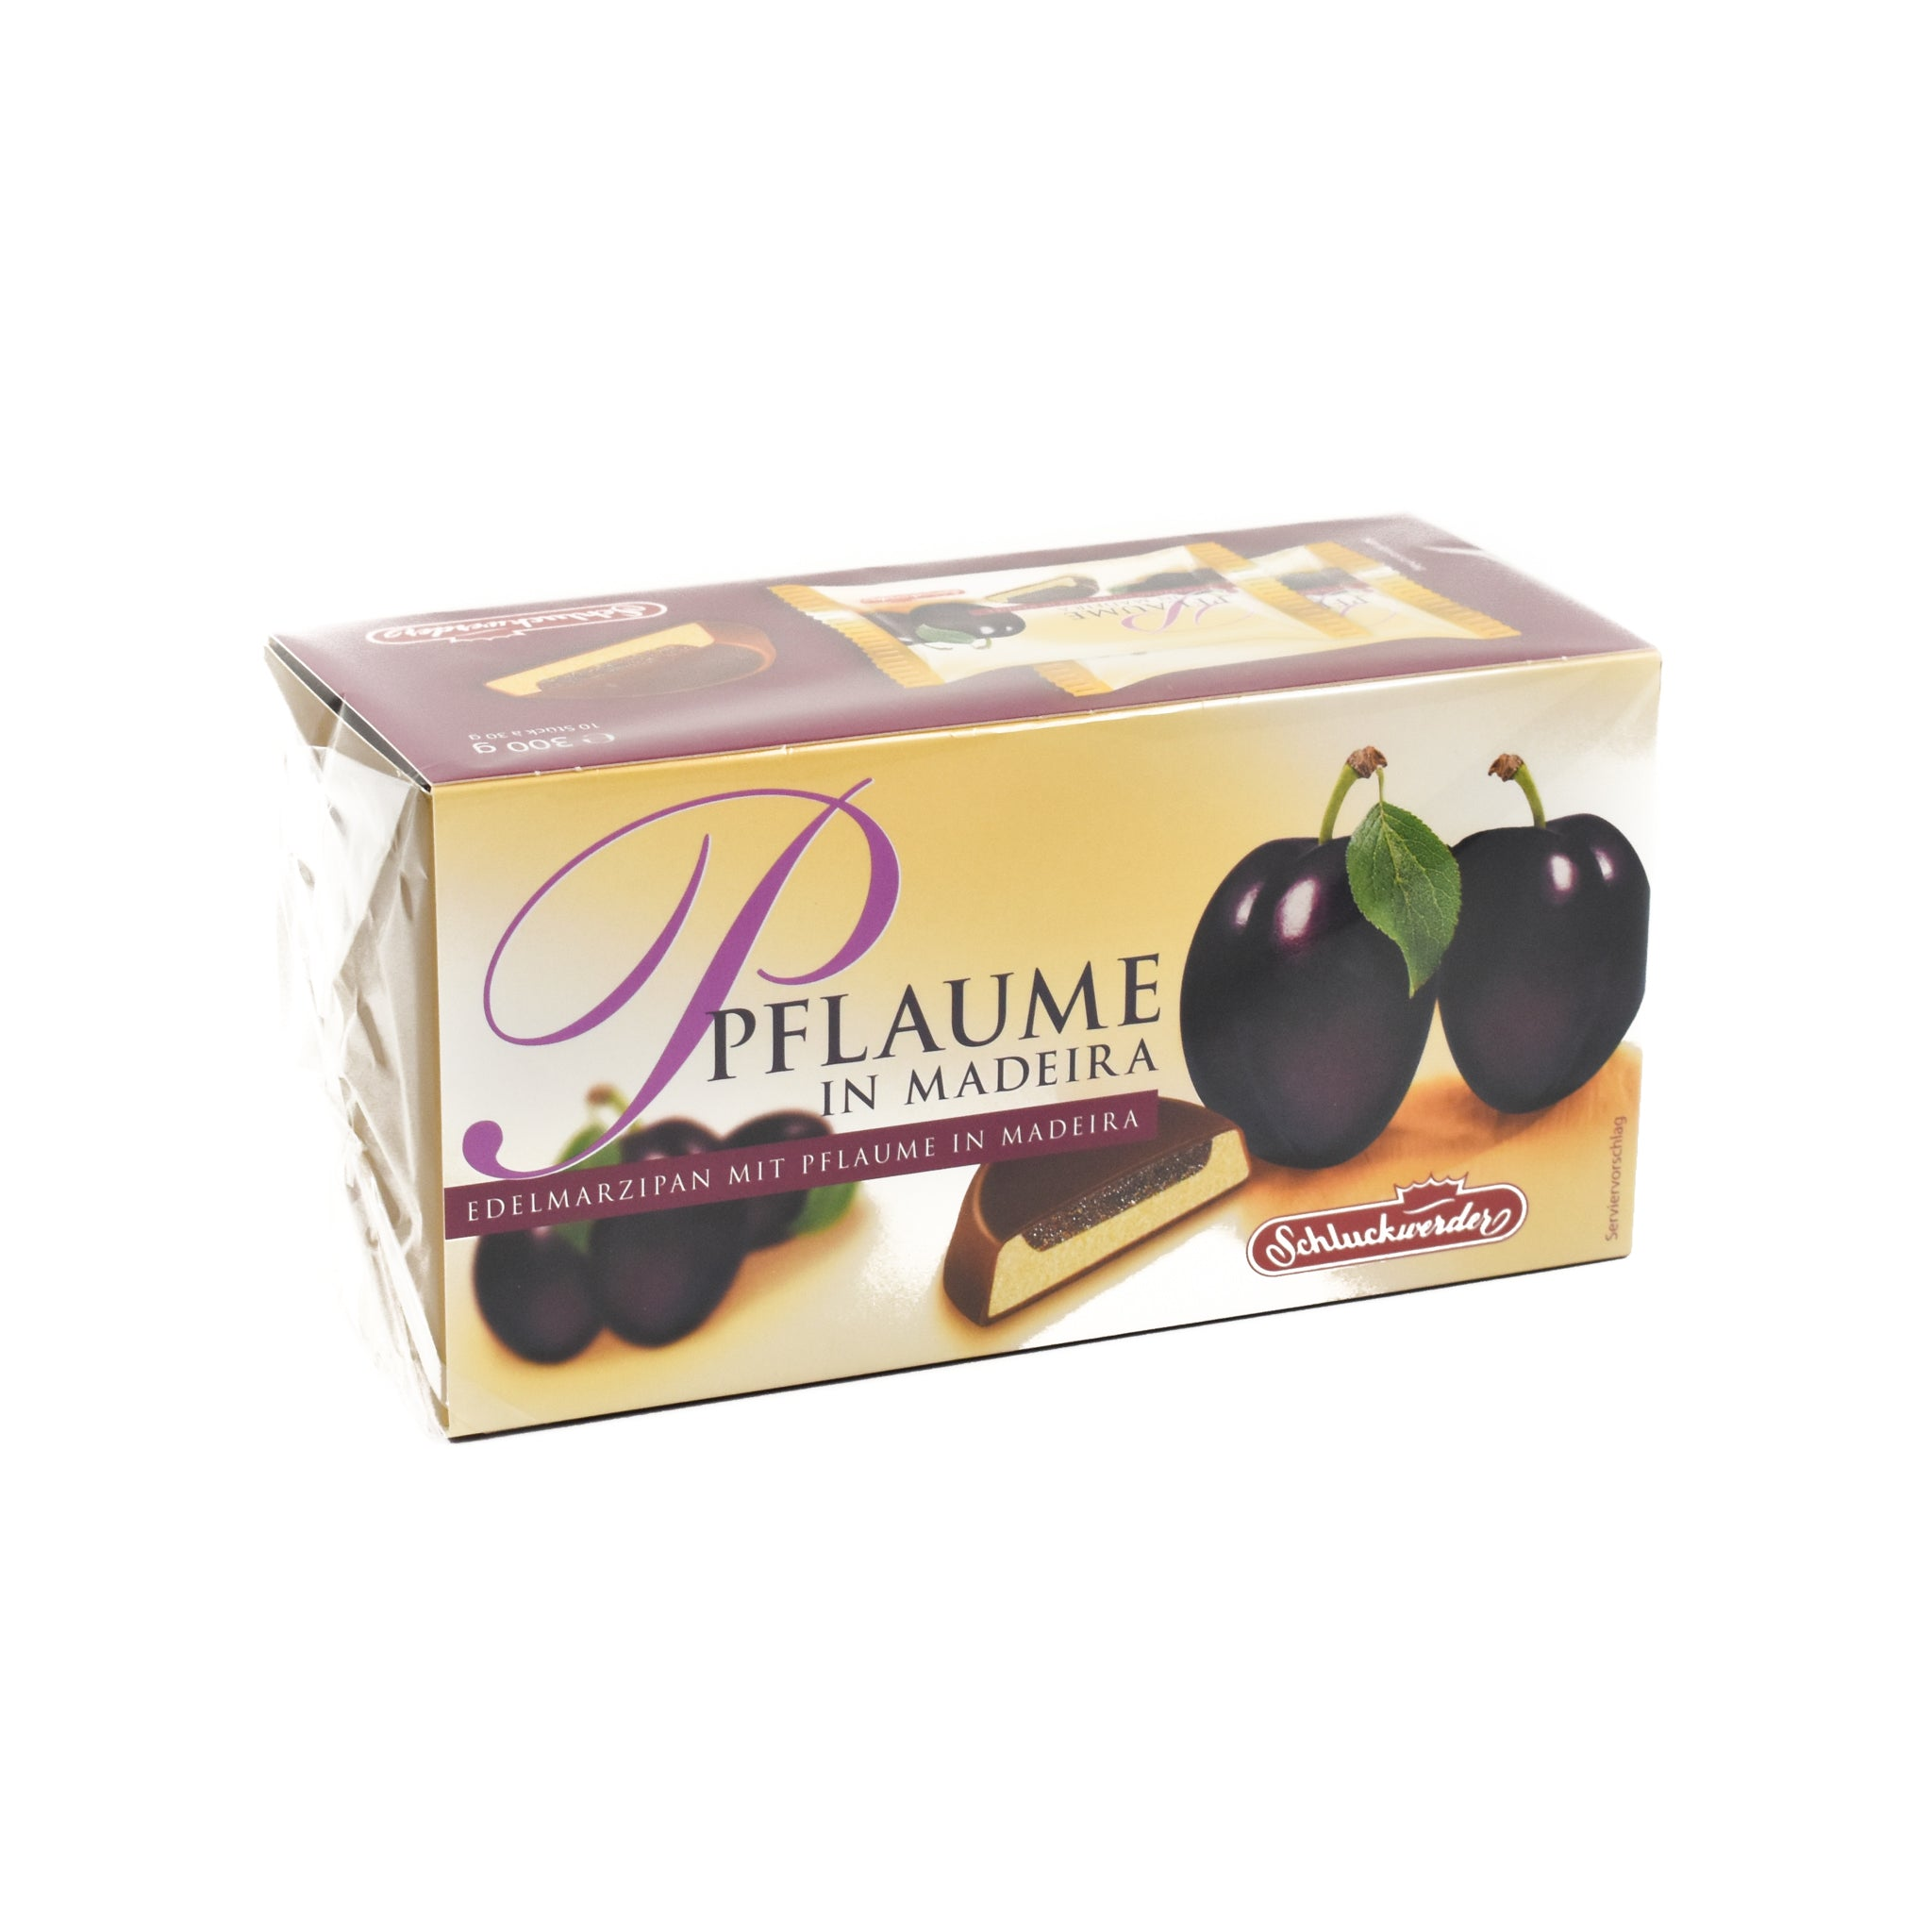 Schluckwerder Marzipan & Plum in Madeira 300g Ingredients Chocolate Bars & Confectionery German Food